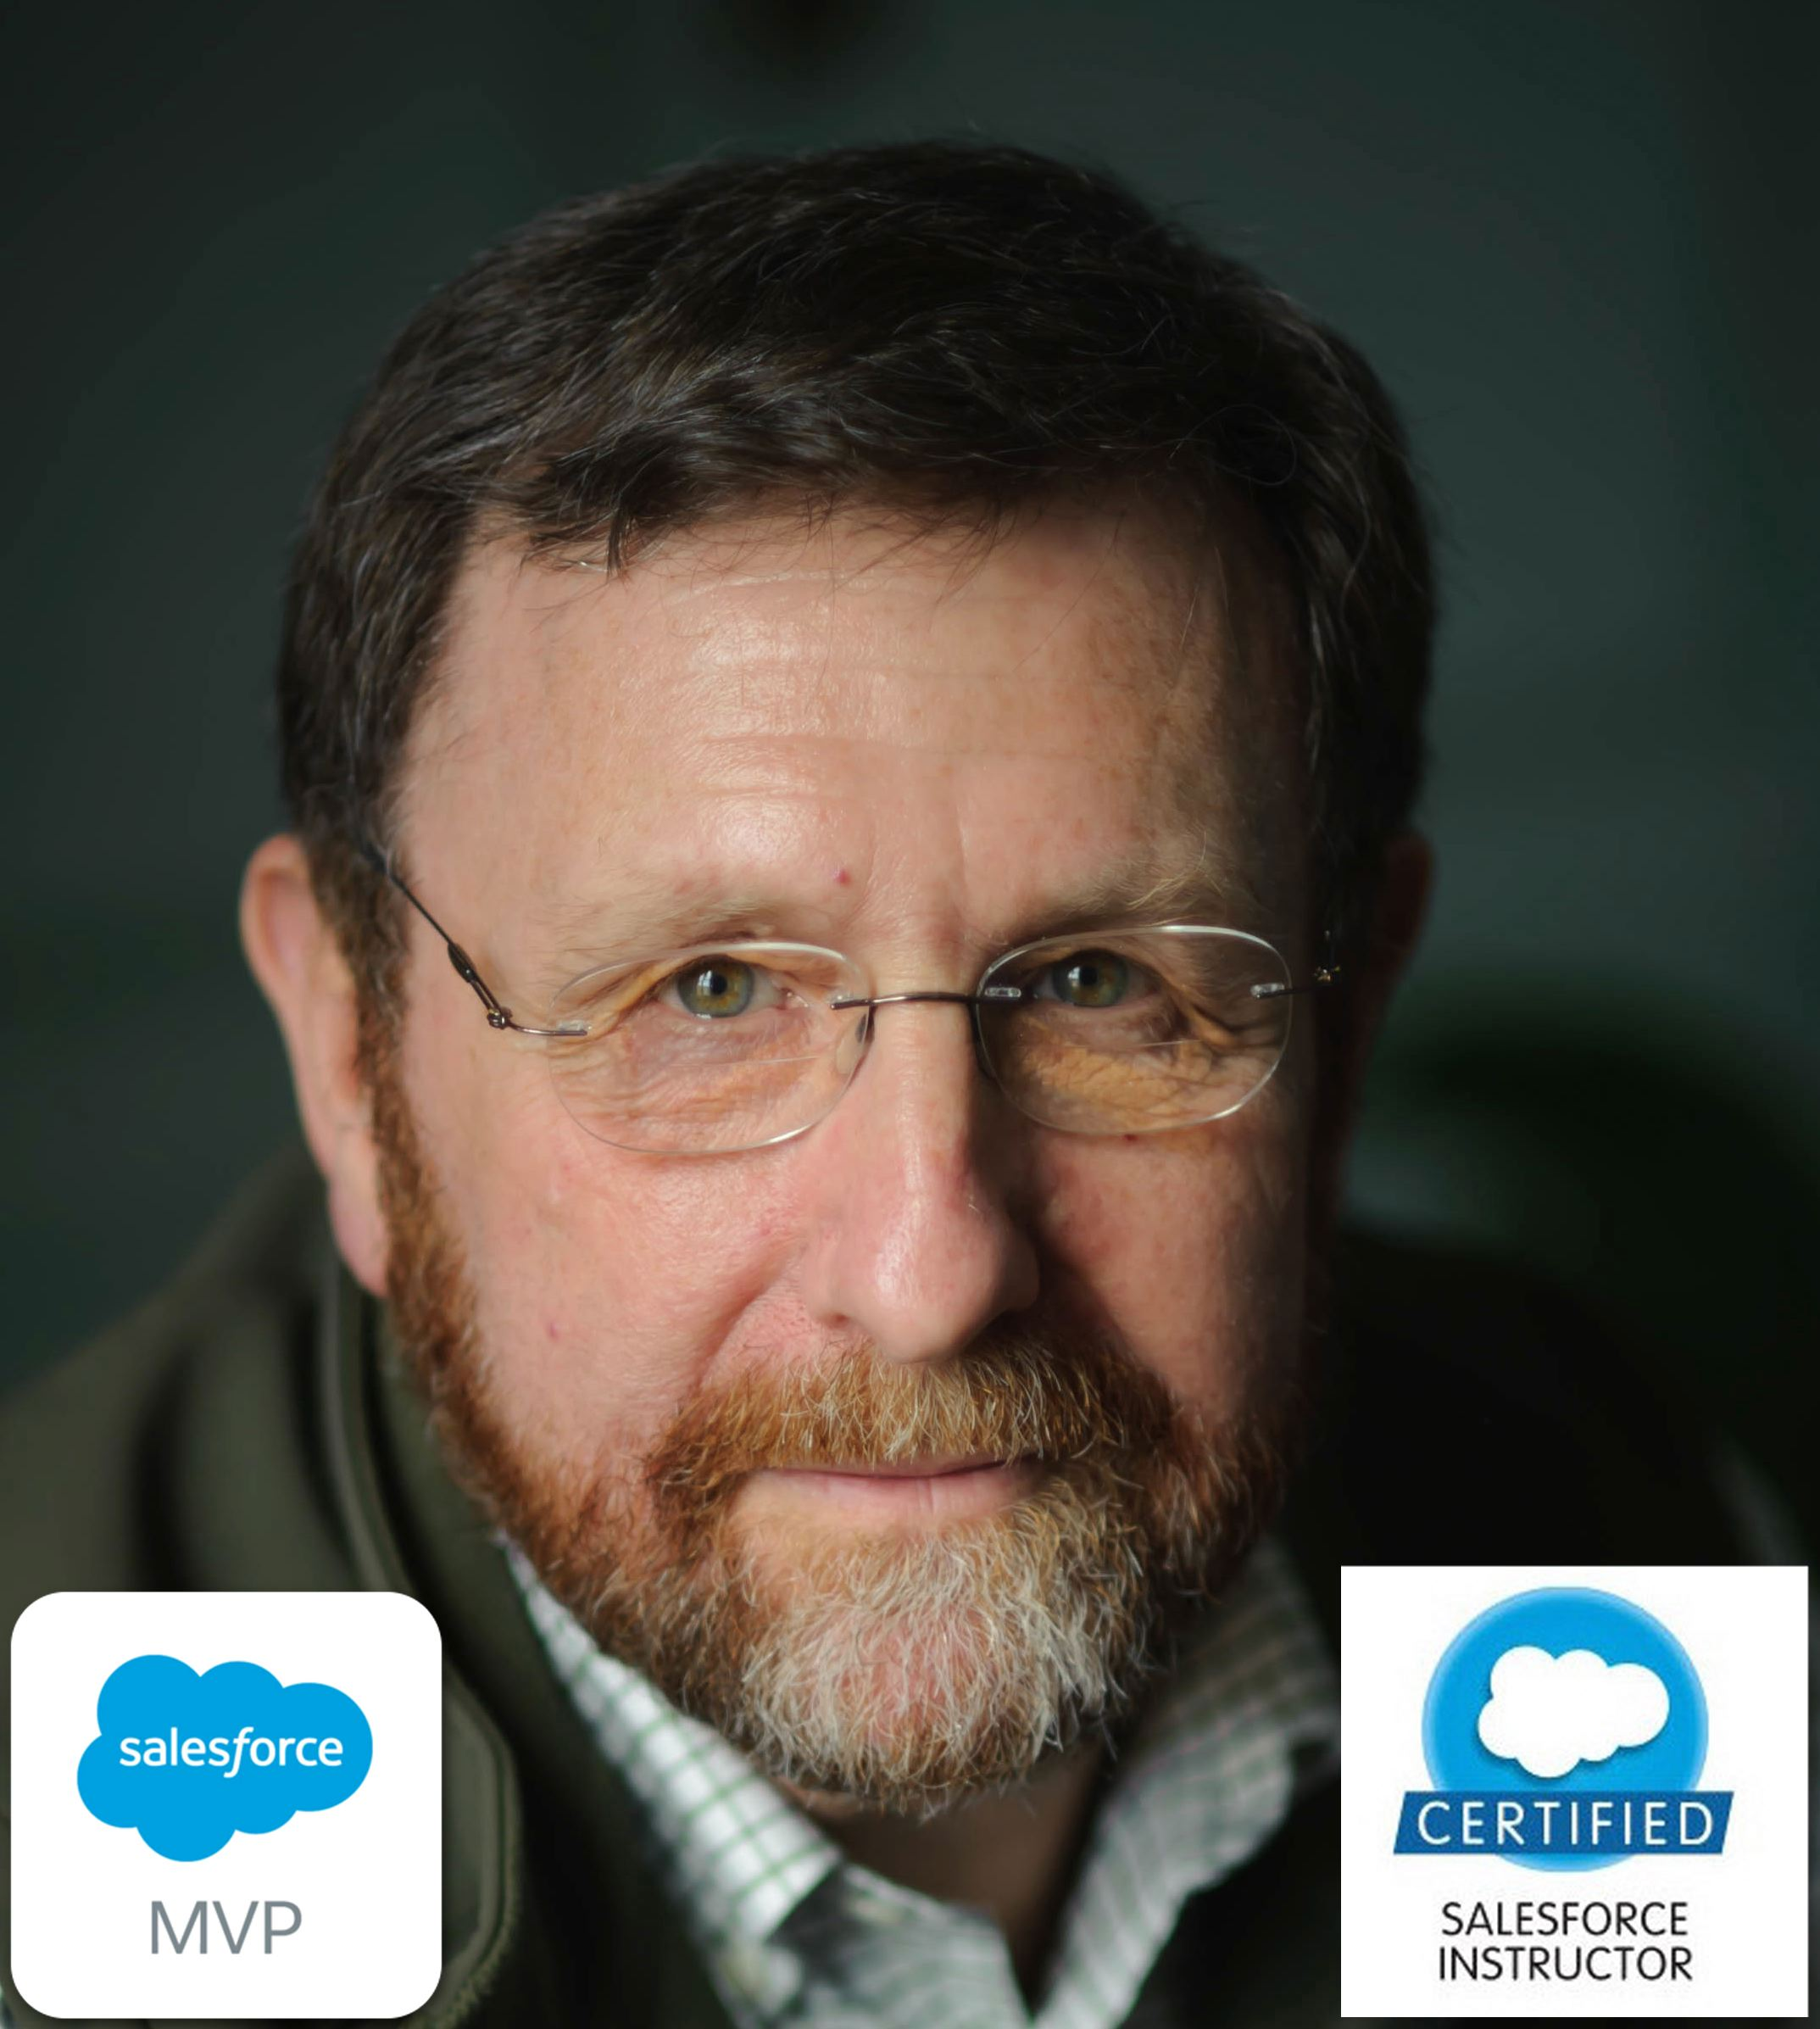 "Don RobinsSalesforce Technical Educator - Senior Technical Instructor - Producer of Salesforce Play By Play series on Pluralsight - Don Robins is a well known Salesforce MVP, instructor, author and speaker. A custom business application developer for more decades than he cares to admit, he focuses on Salesforce technical instruction and knowledge sharing. Certified as a Platform II Developer and an award winning Salesforce Instructor, he's presented and taught at annual Dreamforce conferences since 2010. He delivers Salesforce developer classes and workshops around the US and abroad, manages a team of instructors as a Salesforce Training Partner, and is the producer of the Pluralsight.com ""Salesforce Play By Play"" series."